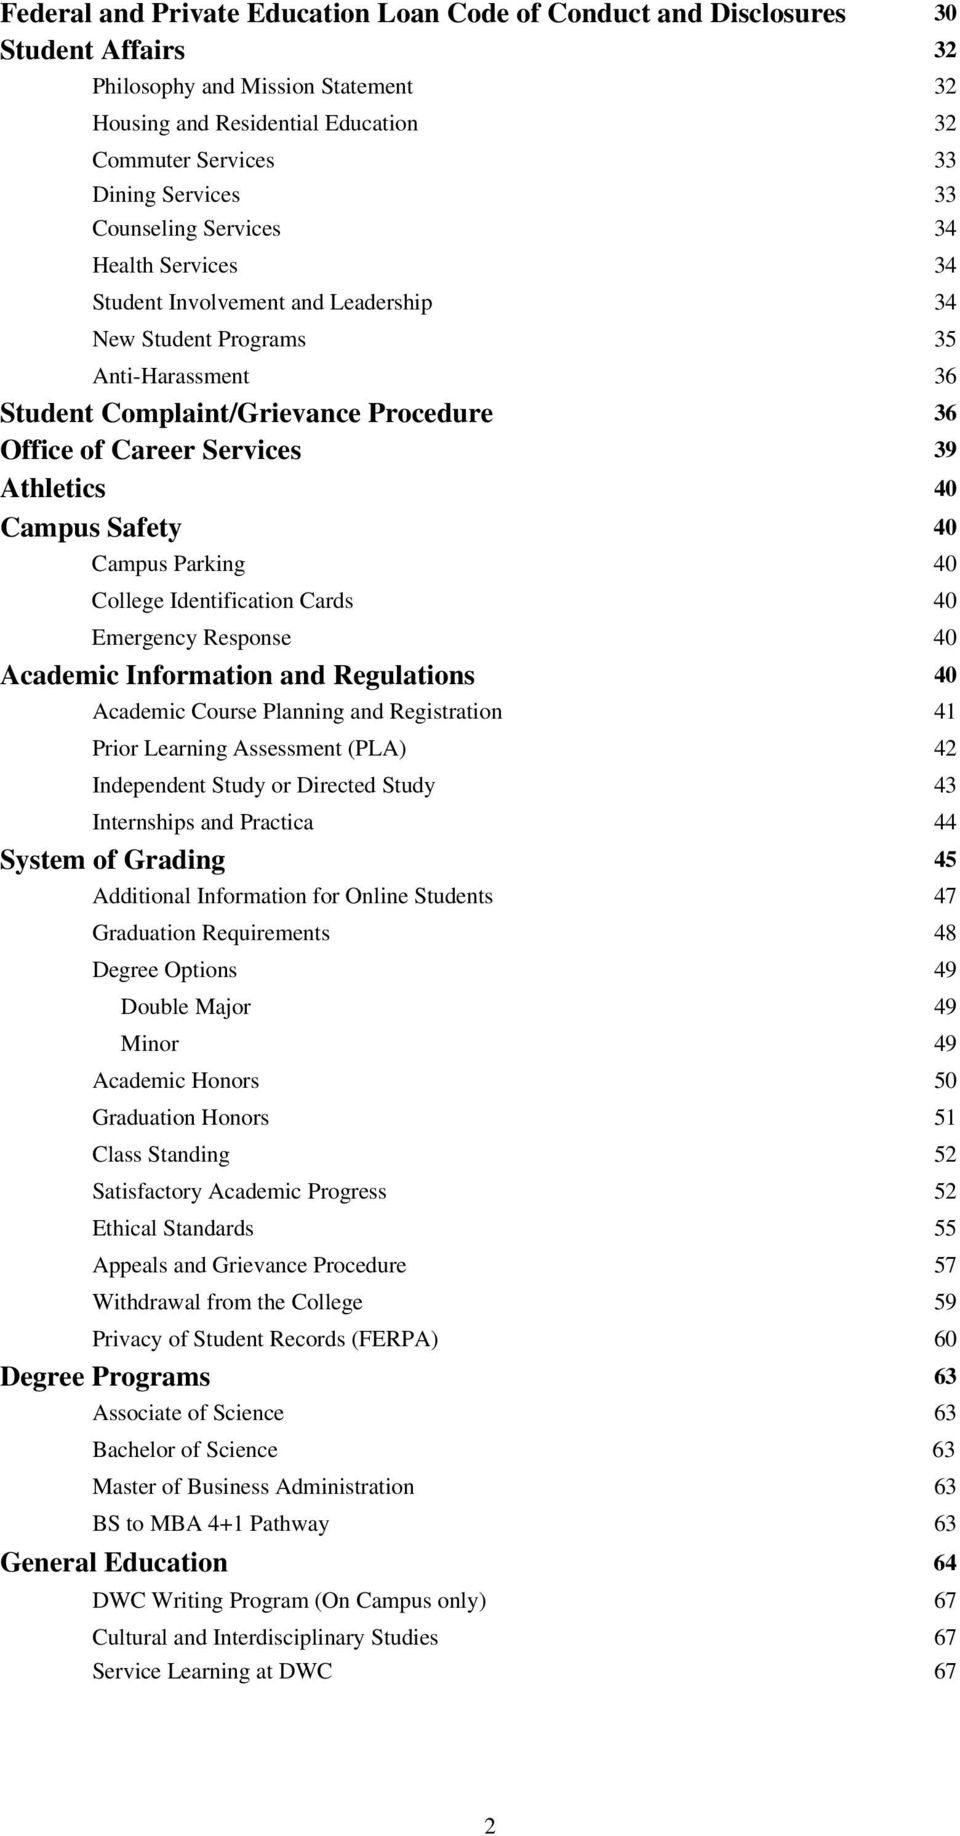 Athletics 40 Campus Safety 40 Campus Parking 40 College Identification Cards 40 Emergency Response 40 Academic Information and Regulations 40 Academic Course Planning and Registration 41 Prior